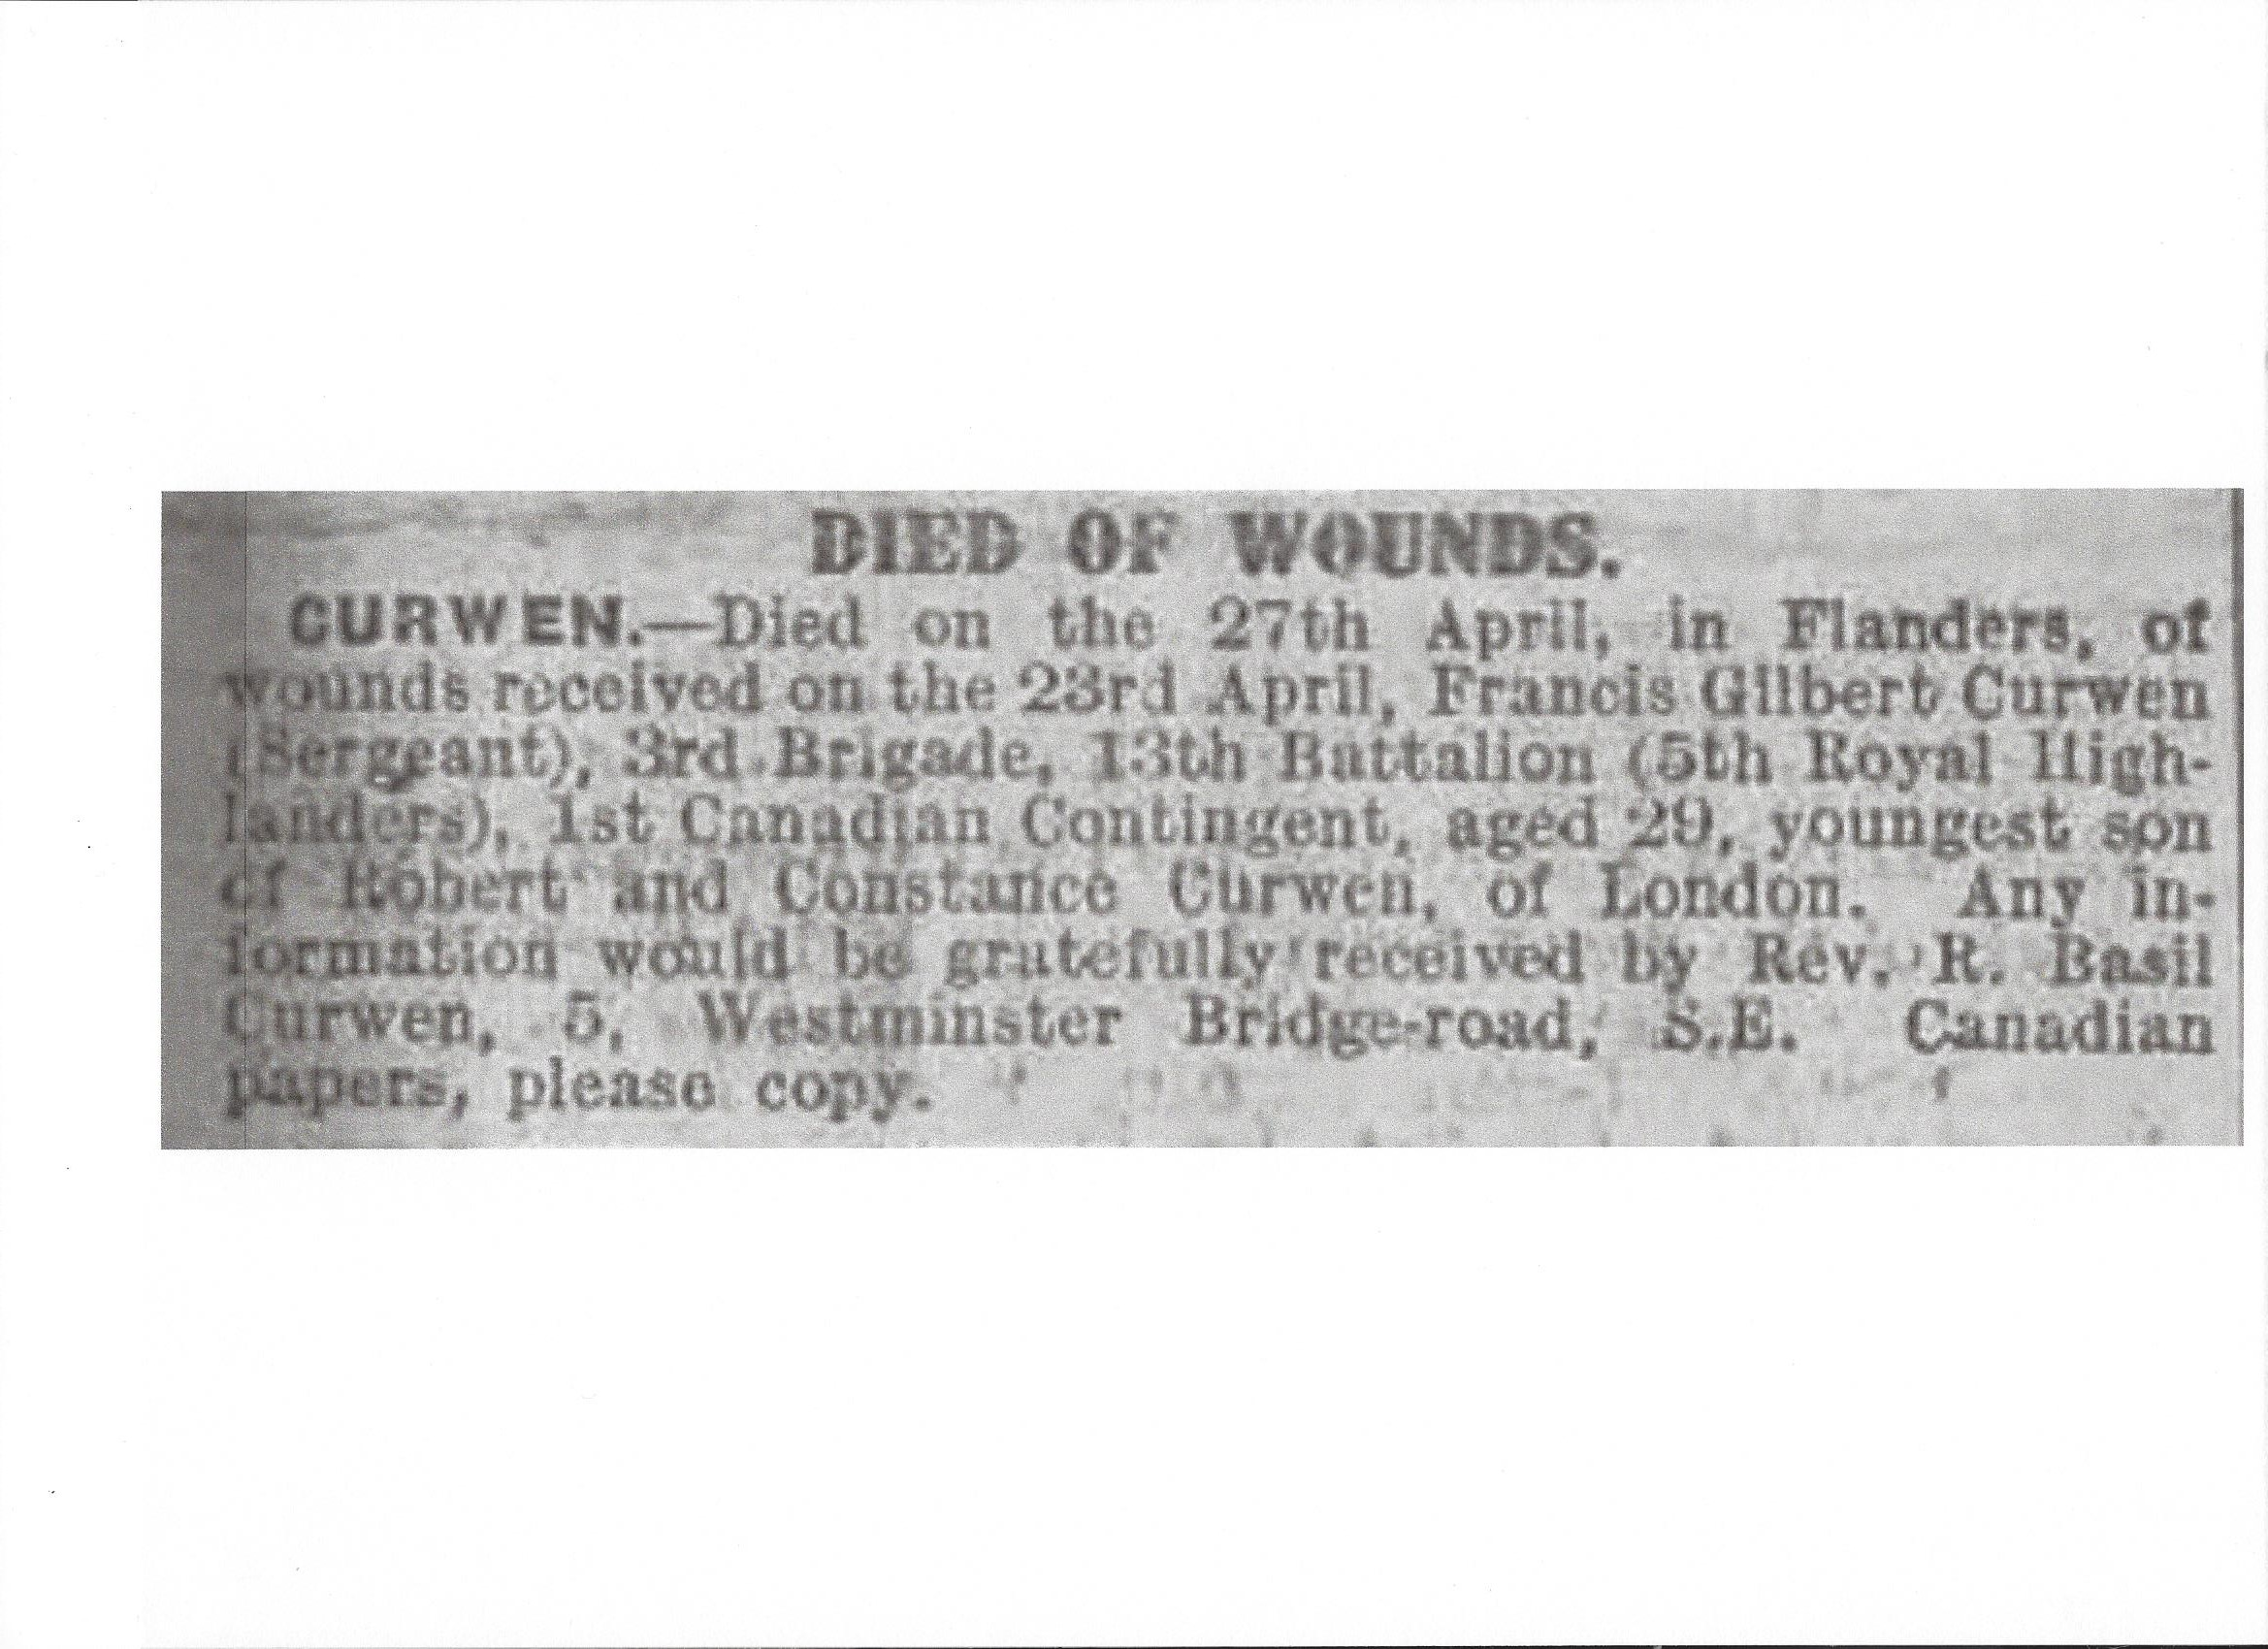 Newspaper Clipping– Newspaper clipping from the Daily Telegraph of July 5, 1915. Image taken from web address of http://www.telegraph.co.uk/news/ww1-archive/11720689/Daily-Telegraph-July-5-1915.html